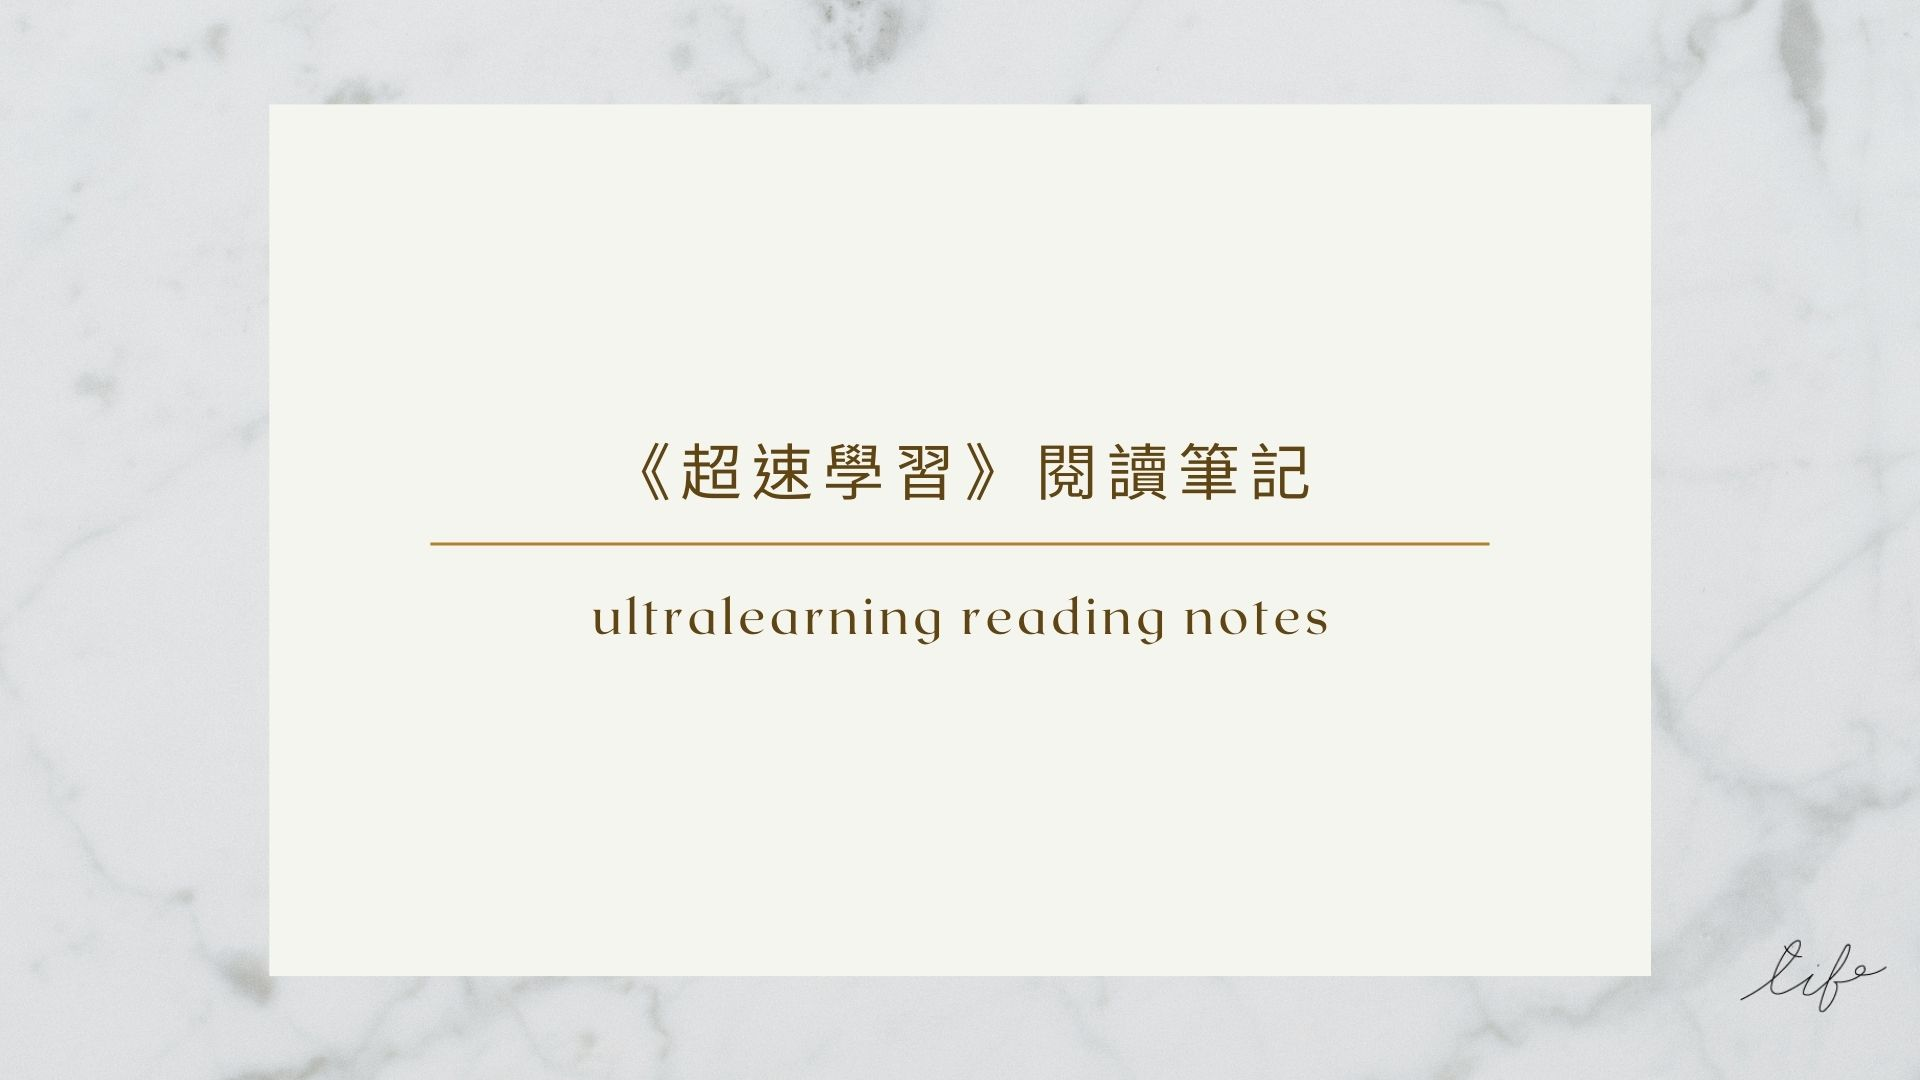 ultralearning reading notes